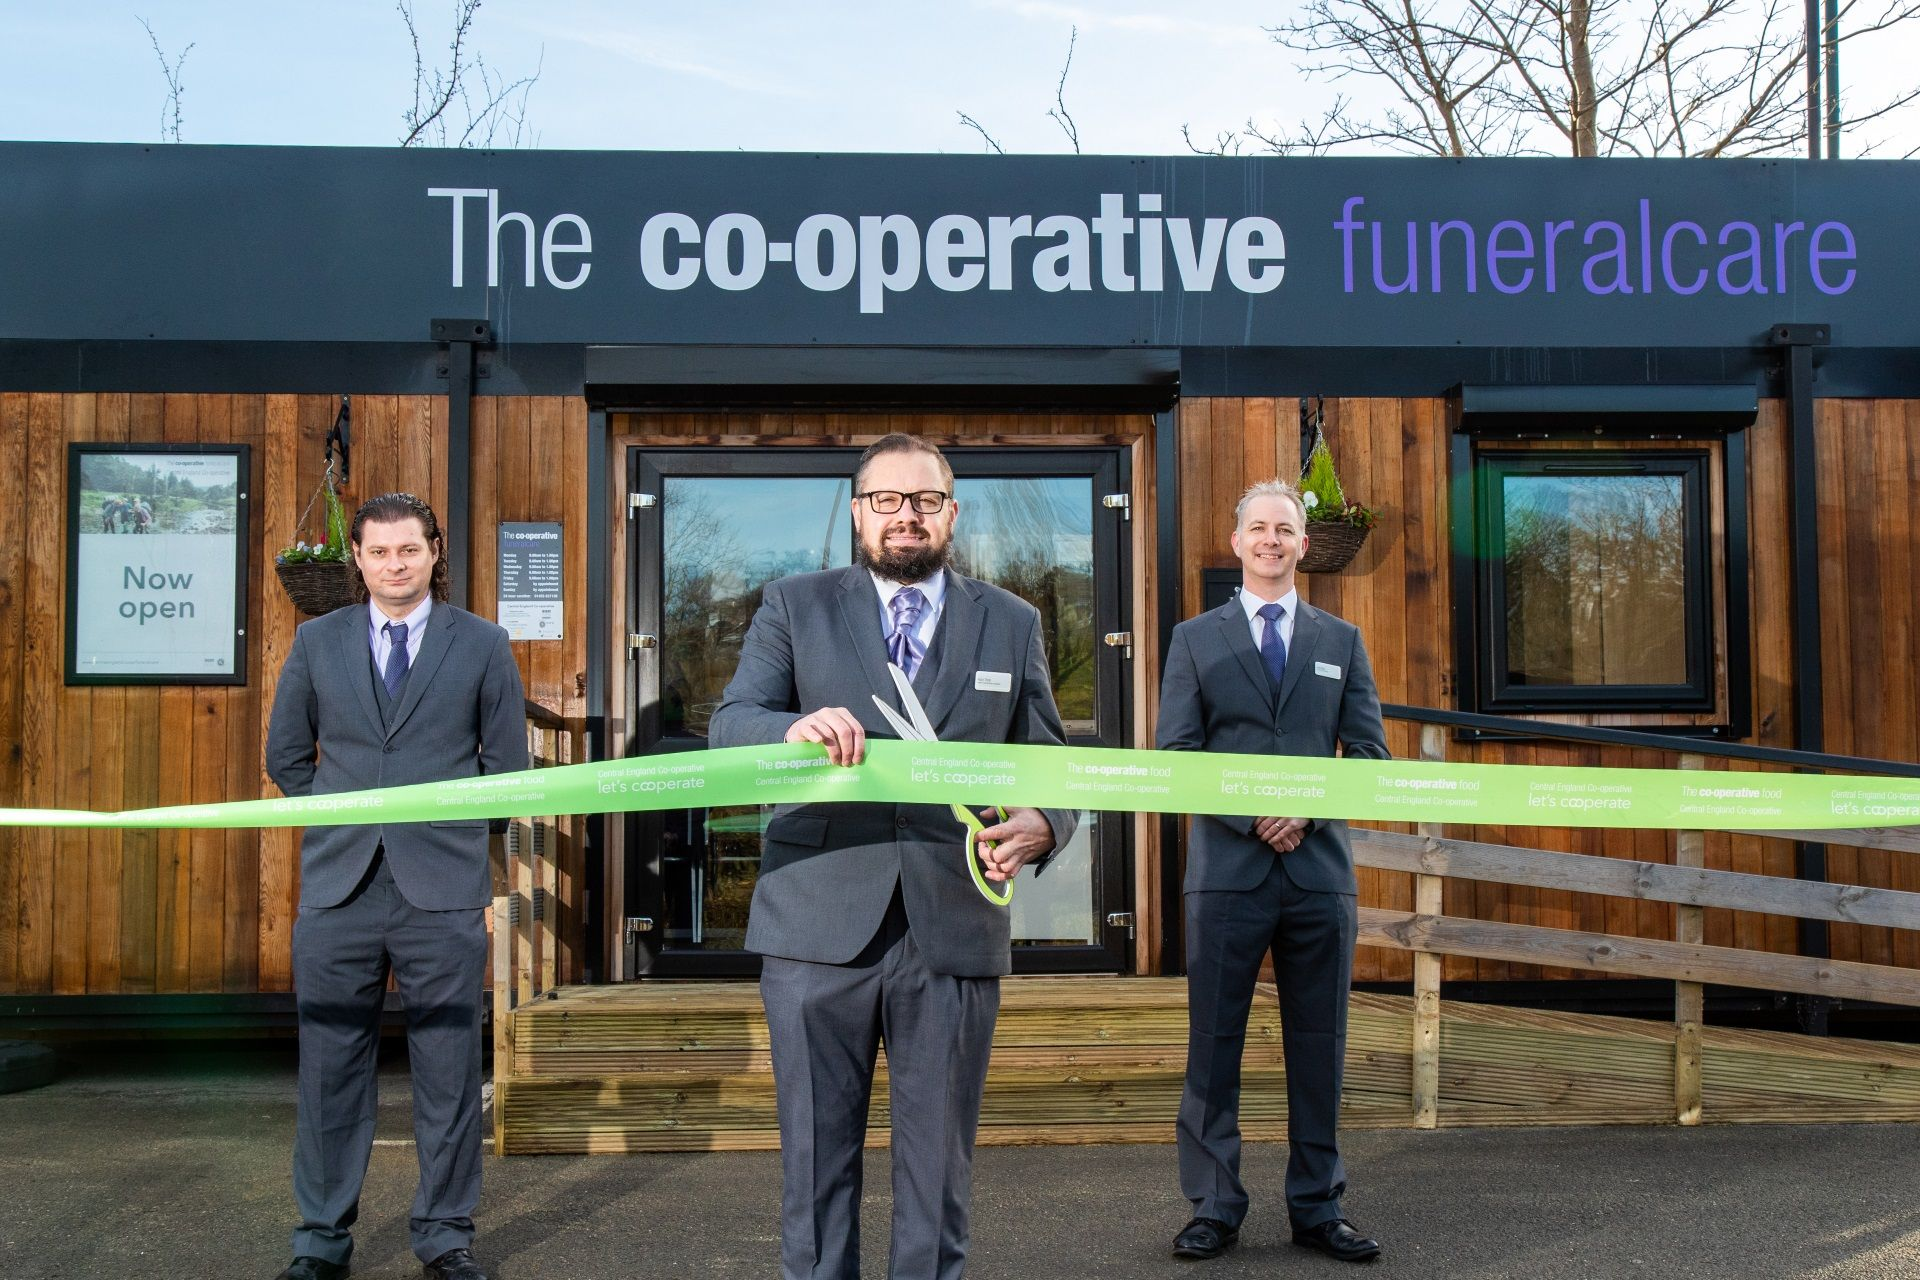 Central England Co-op launches funeral home with a difference in Atherstone